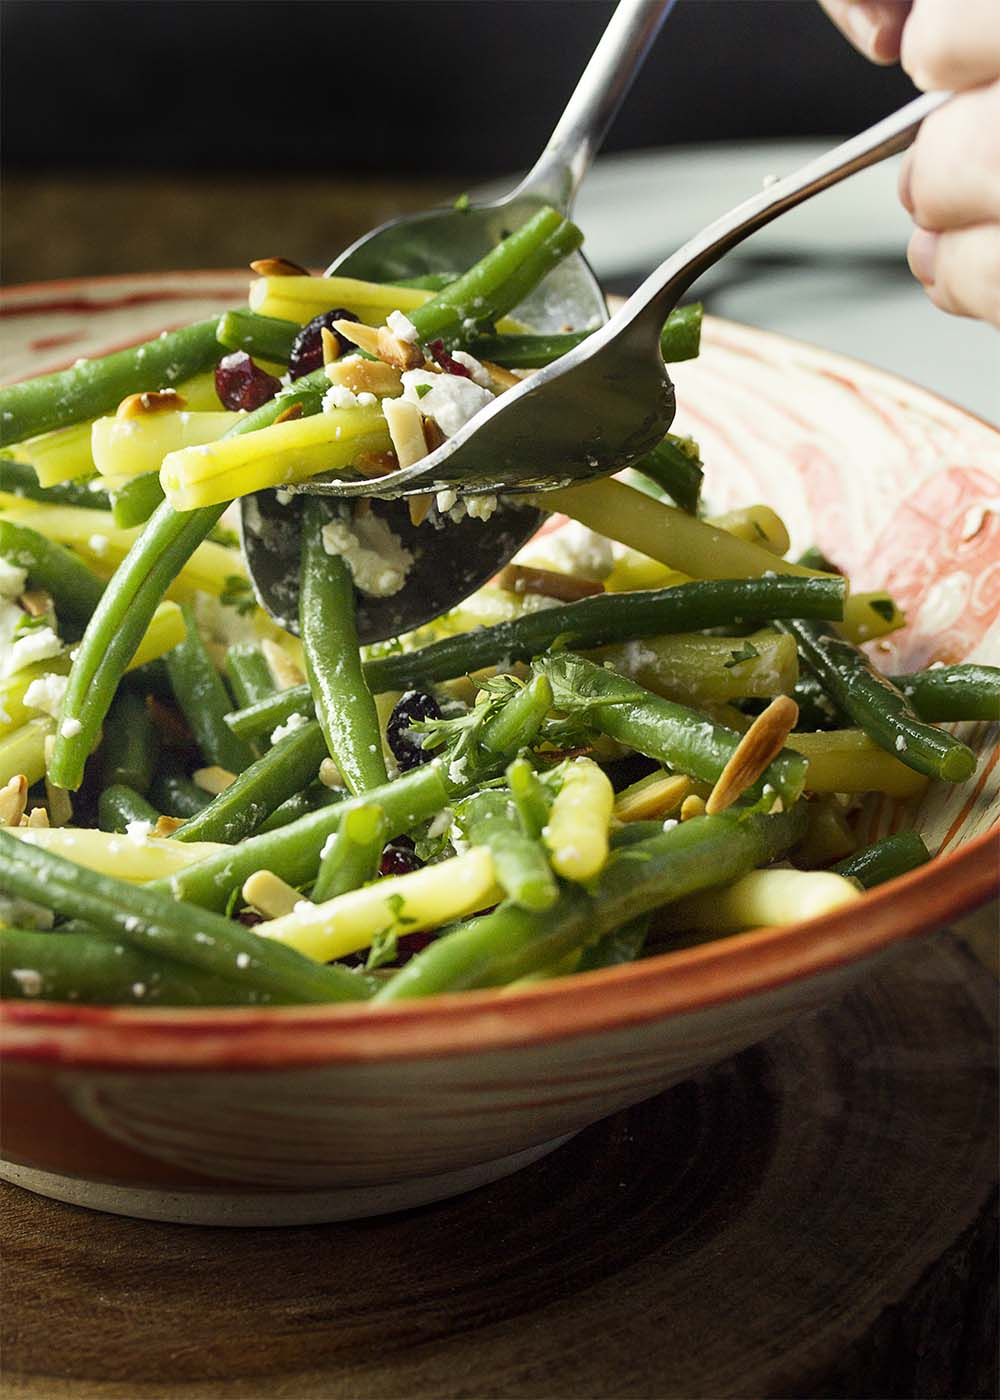 A big serving bowl of green bean salad with fried almonds with salad tongs scooping out a portion.